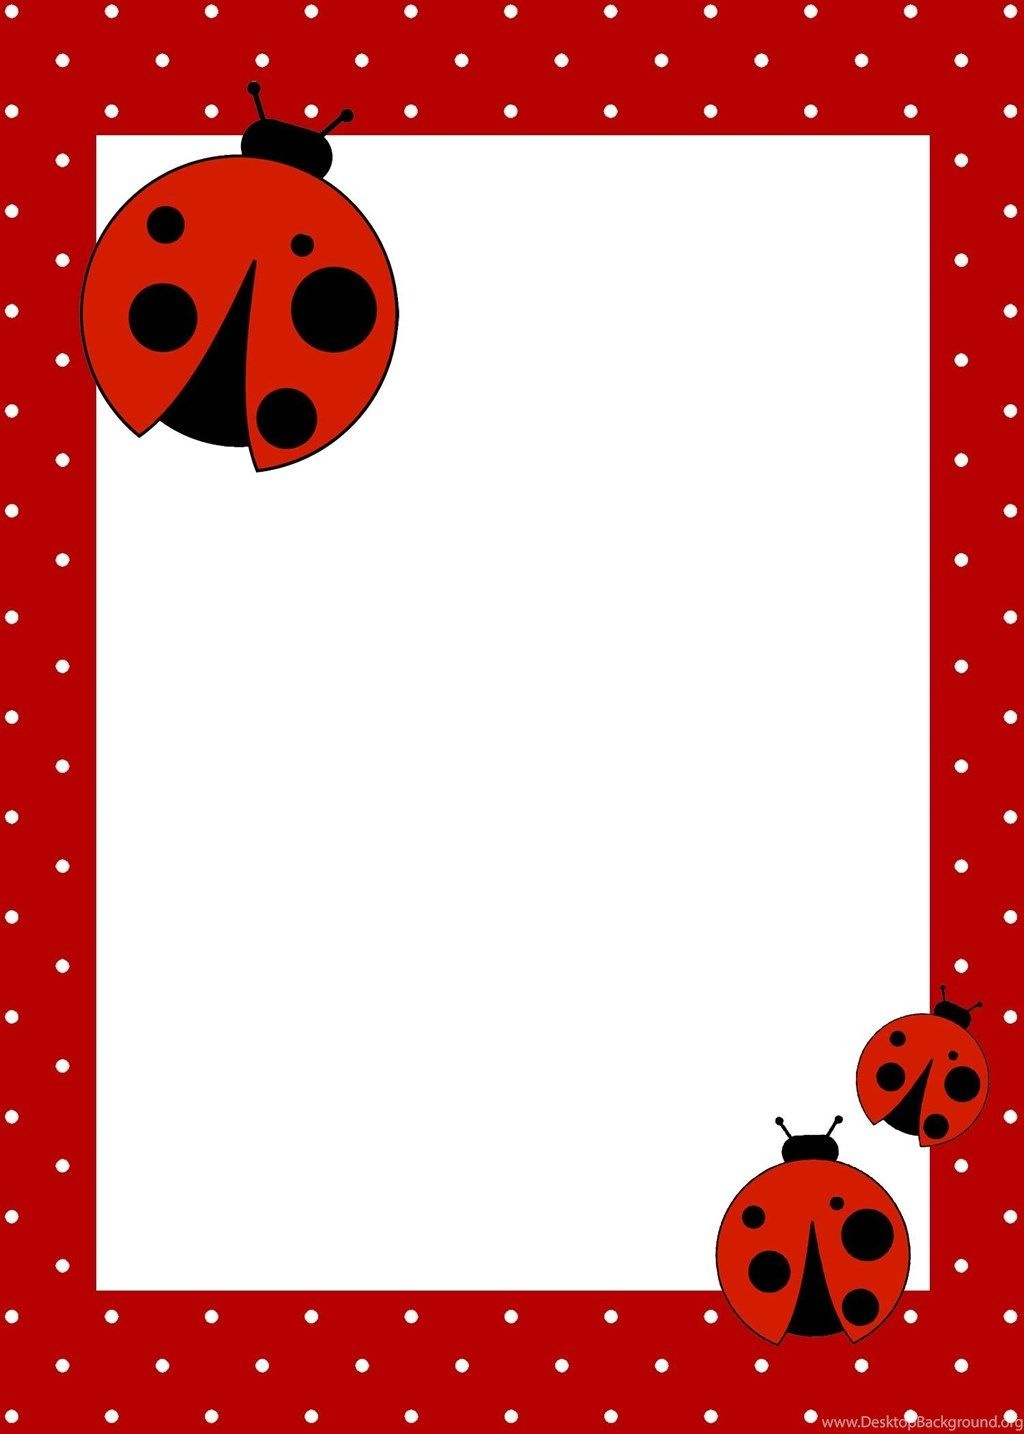 Ladybug Themed Birthday Party With Free Printables How To Nest - Ladybug Themed Birthday Party With Free Printables